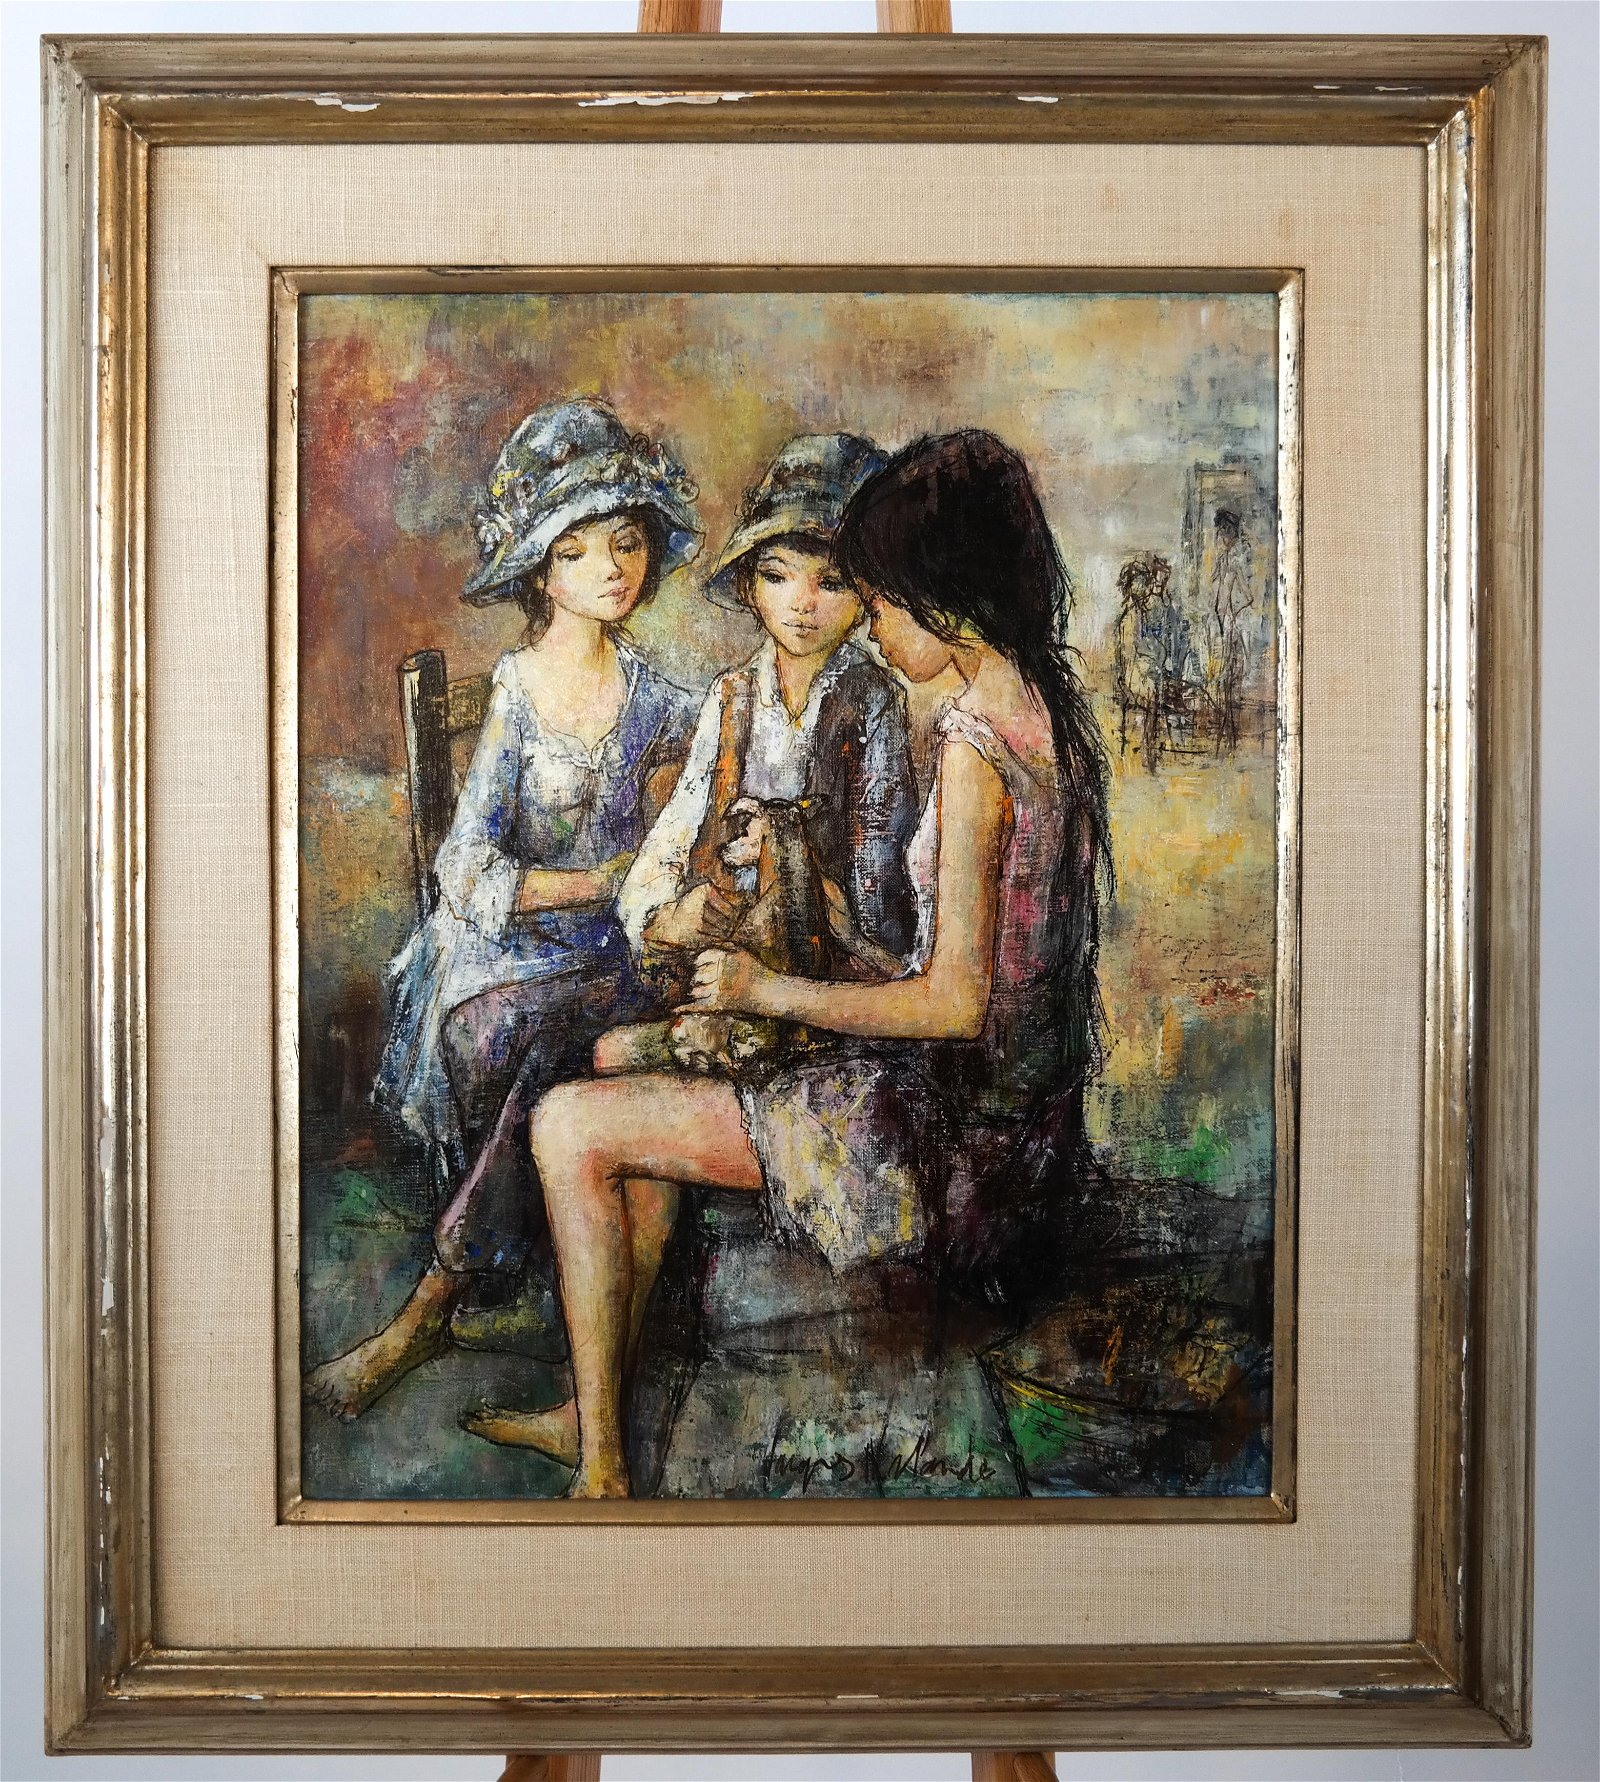 Jacque LALANDE: Three Girls - Oil on Canvas